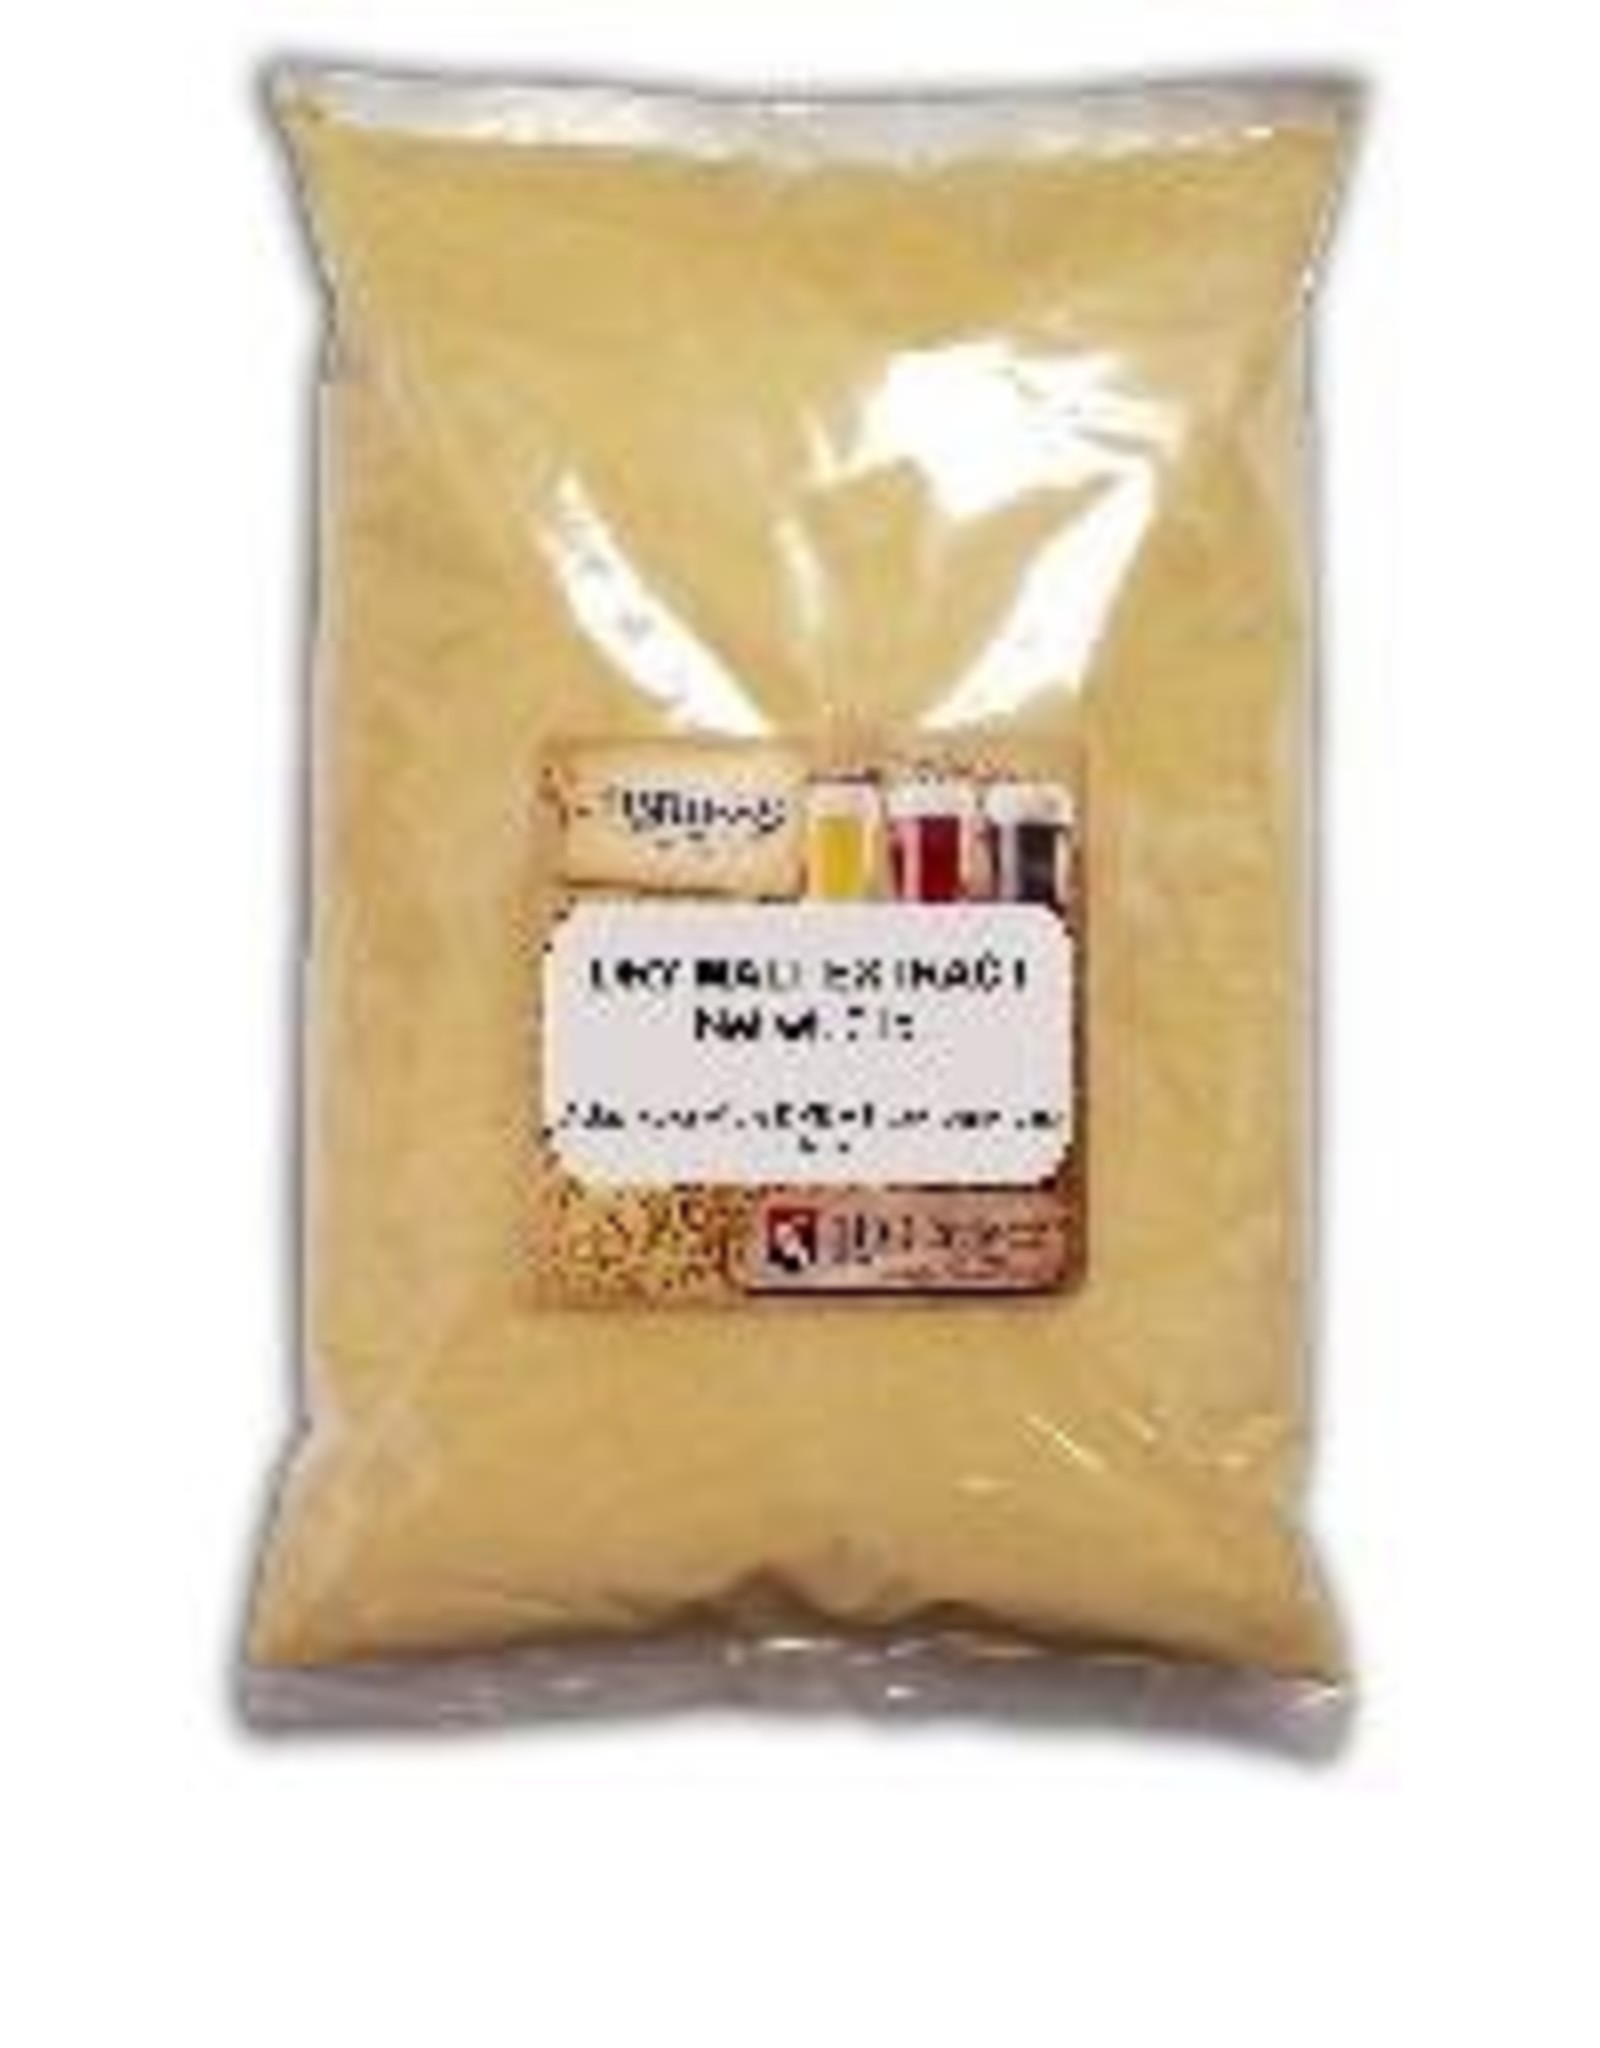 BRIESS BRIESS DRY MALT EXTRACT - Briess Malt & Ingredients Company is the only vertically integrated malting company in North America. They make their malt extracts from their own malt resulting in full flavored, fresh pure malt extracts for top brewhouse perfor